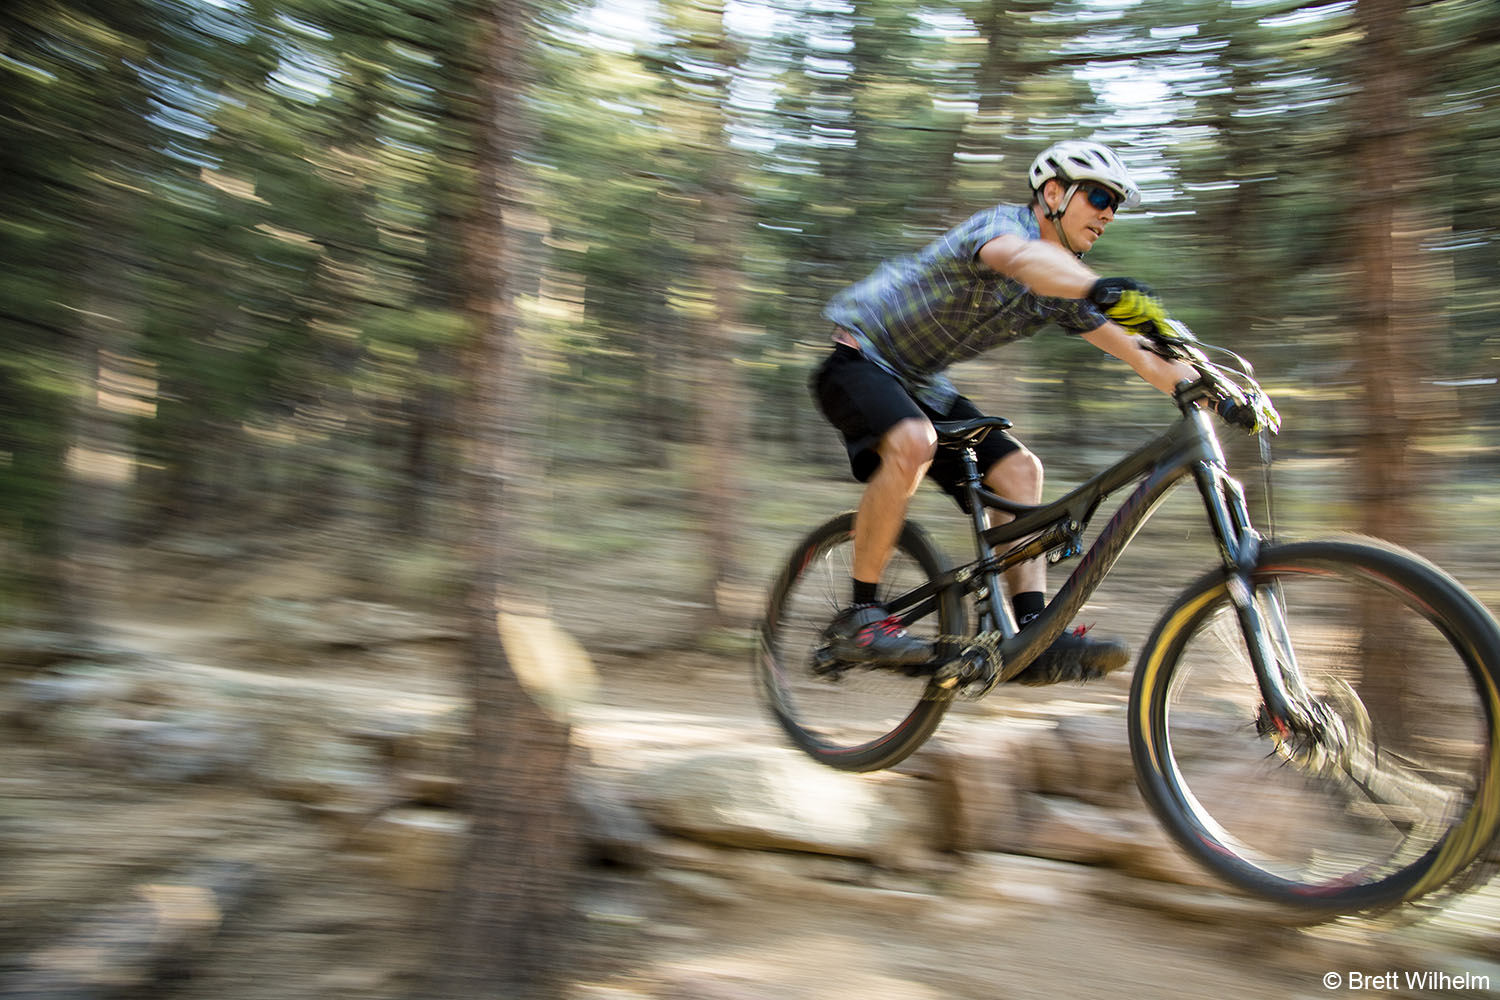 The Nikon D5 is born to capture adventure sports, and the 3D tracking is even better than the already-excellent D4s.